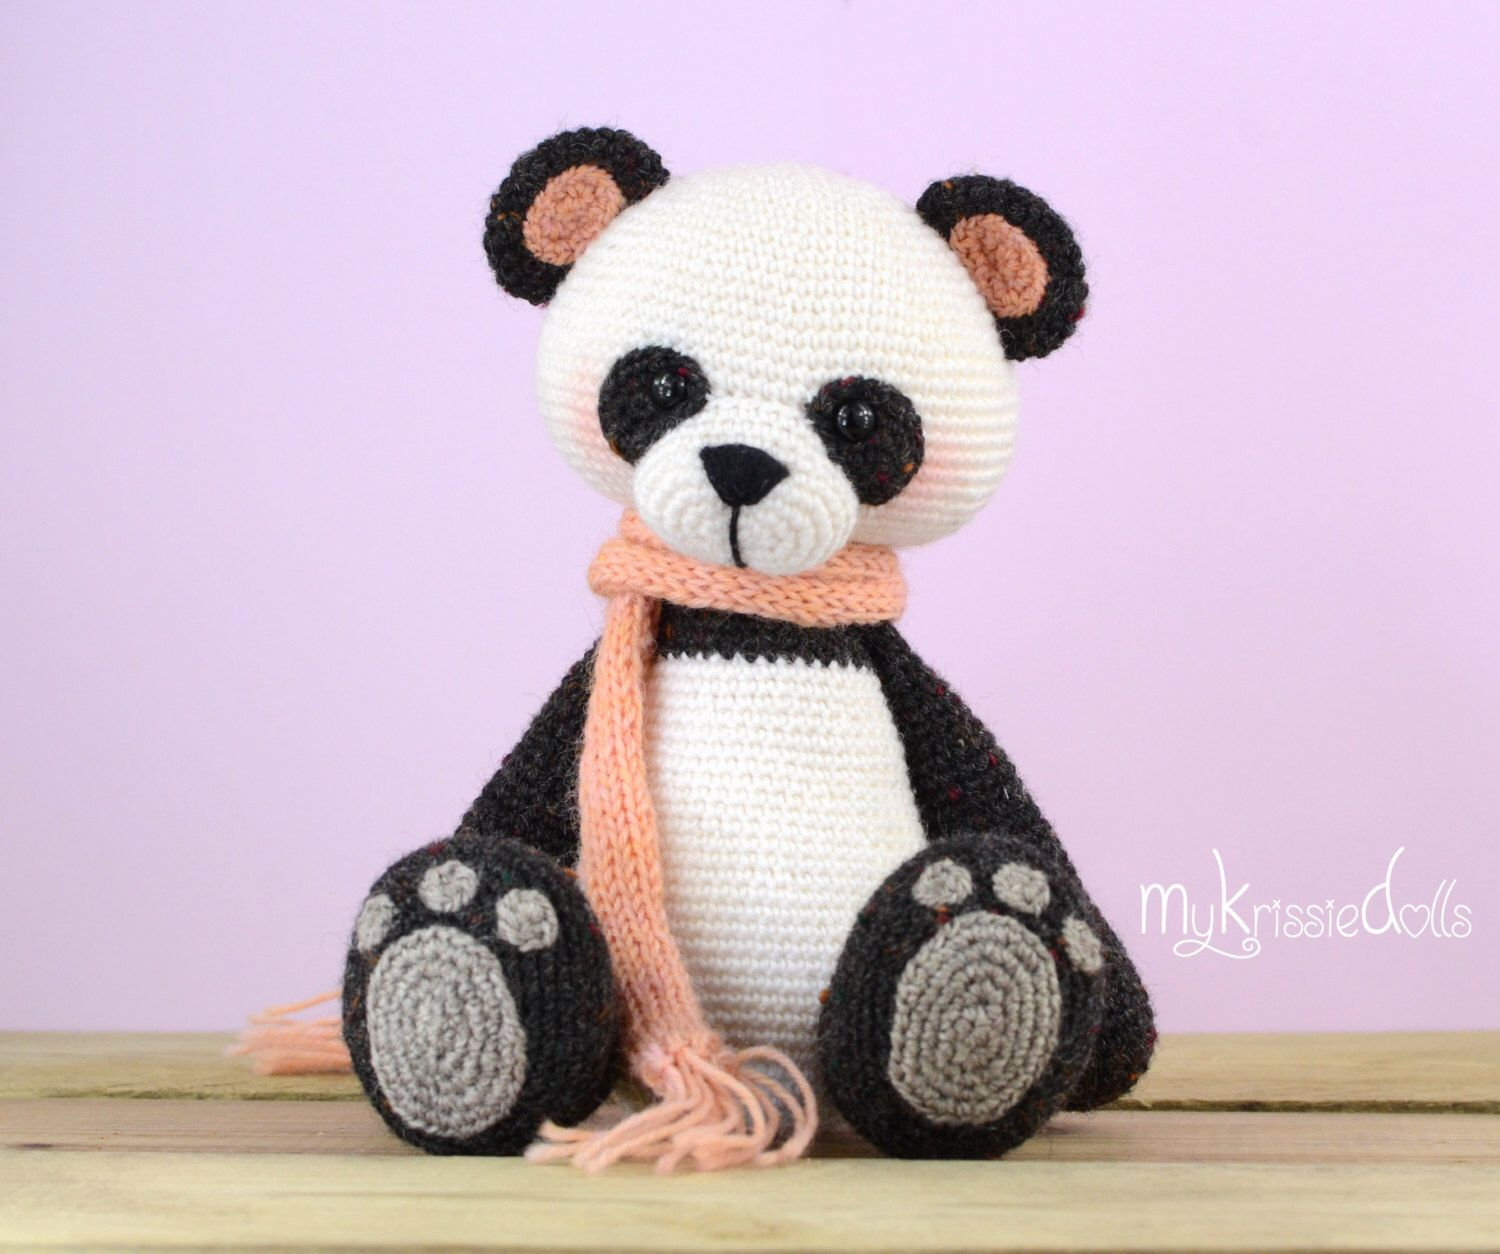 Panda Amigurumi Crochet Tutorial Part 2 - YouTube | 1254x1500